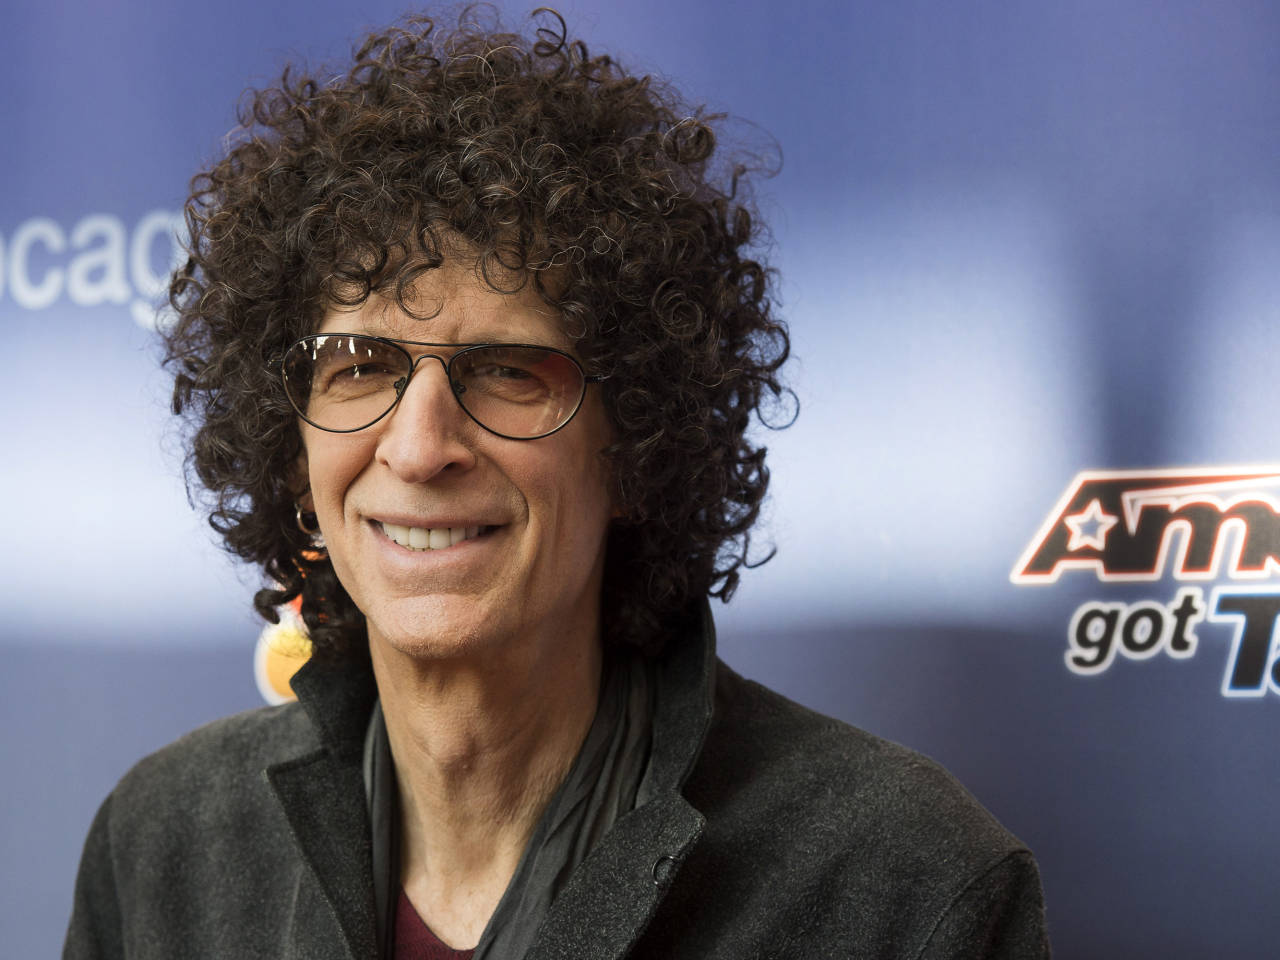 howard stern radio showhoward stern show, howard stern private parts, howard stern wife, howard stern 2017, howard stern young, howard stern beetlejuice, howard stern bill murray, howard stern best, howard stern listen online, howard stern radio show, howard stern electra, howard stern twitter, howard stern interviews, howard stern wiki, howard stern jake gyllenhaal, howard stern radio, howard stern bob dylan, howard stern books, howard stern soundtrack, howard stern khloe kardashian full